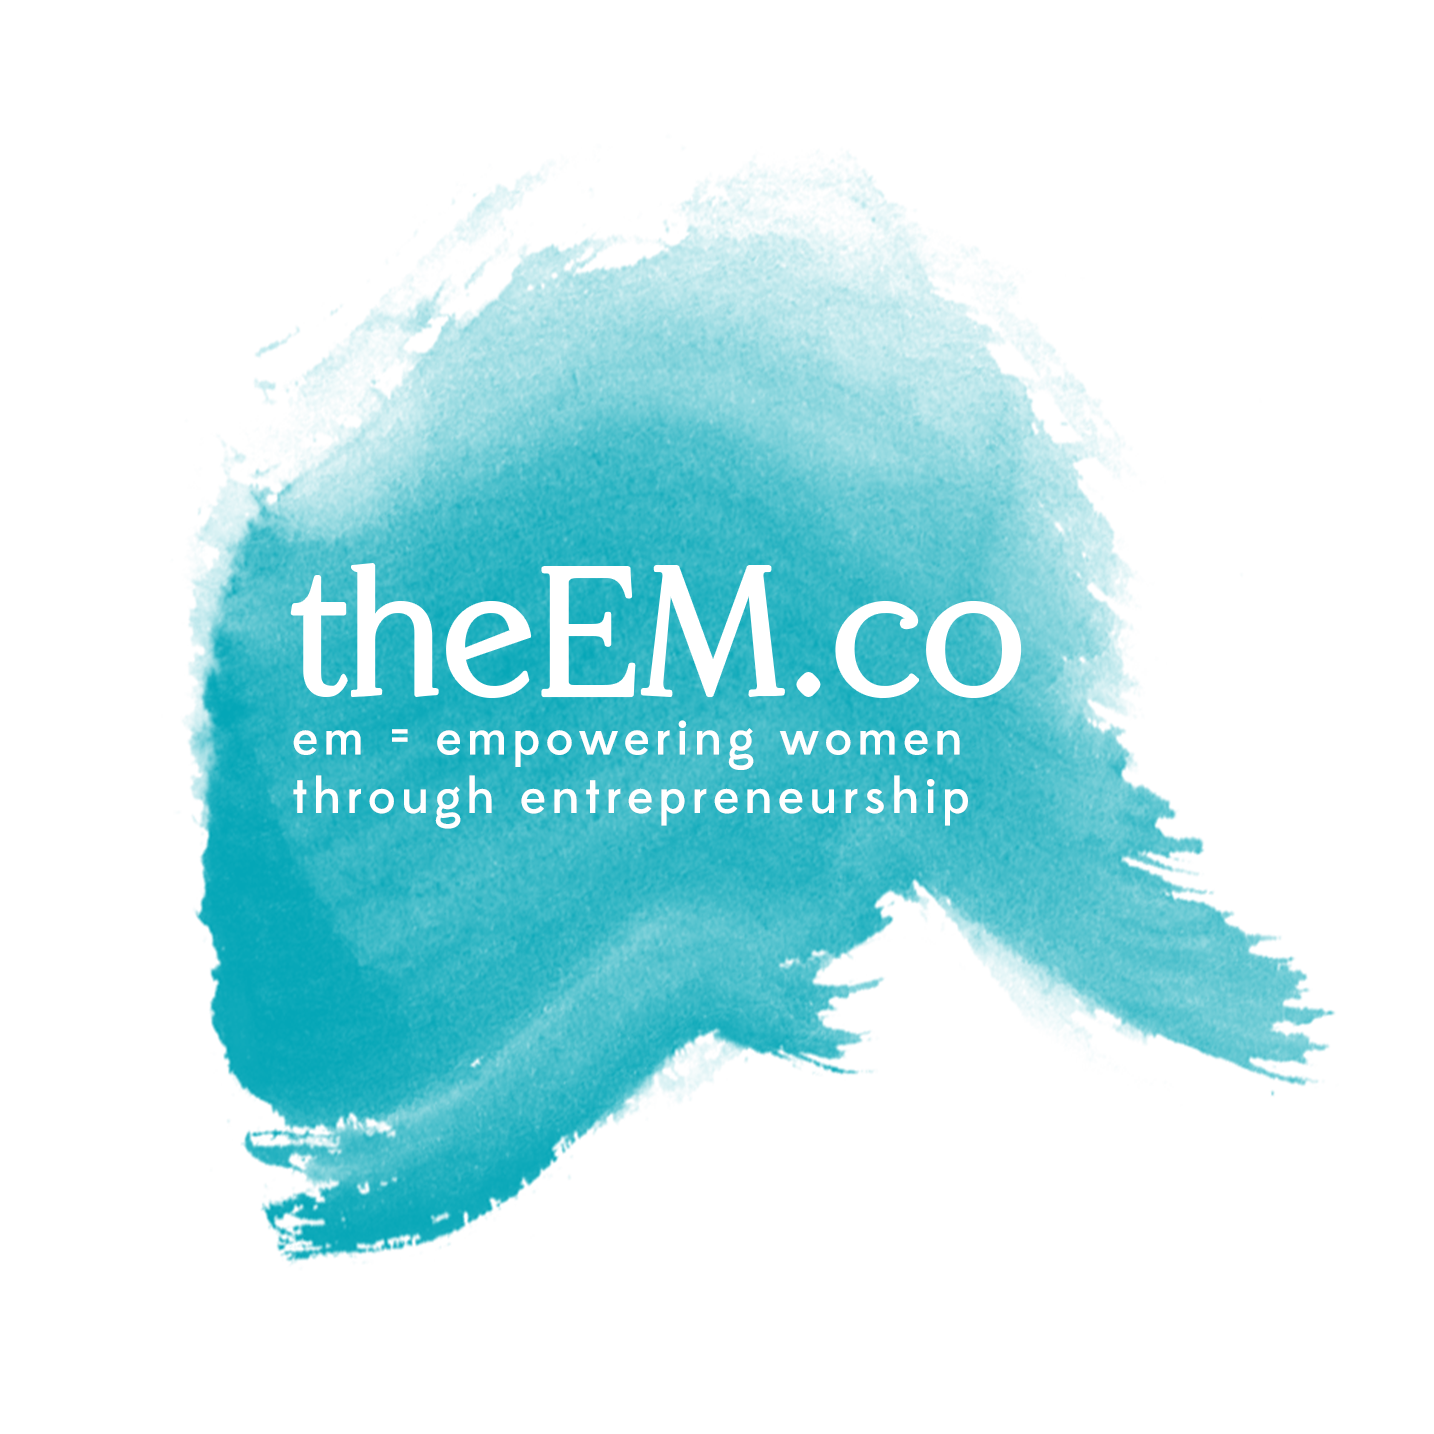 theEM.co